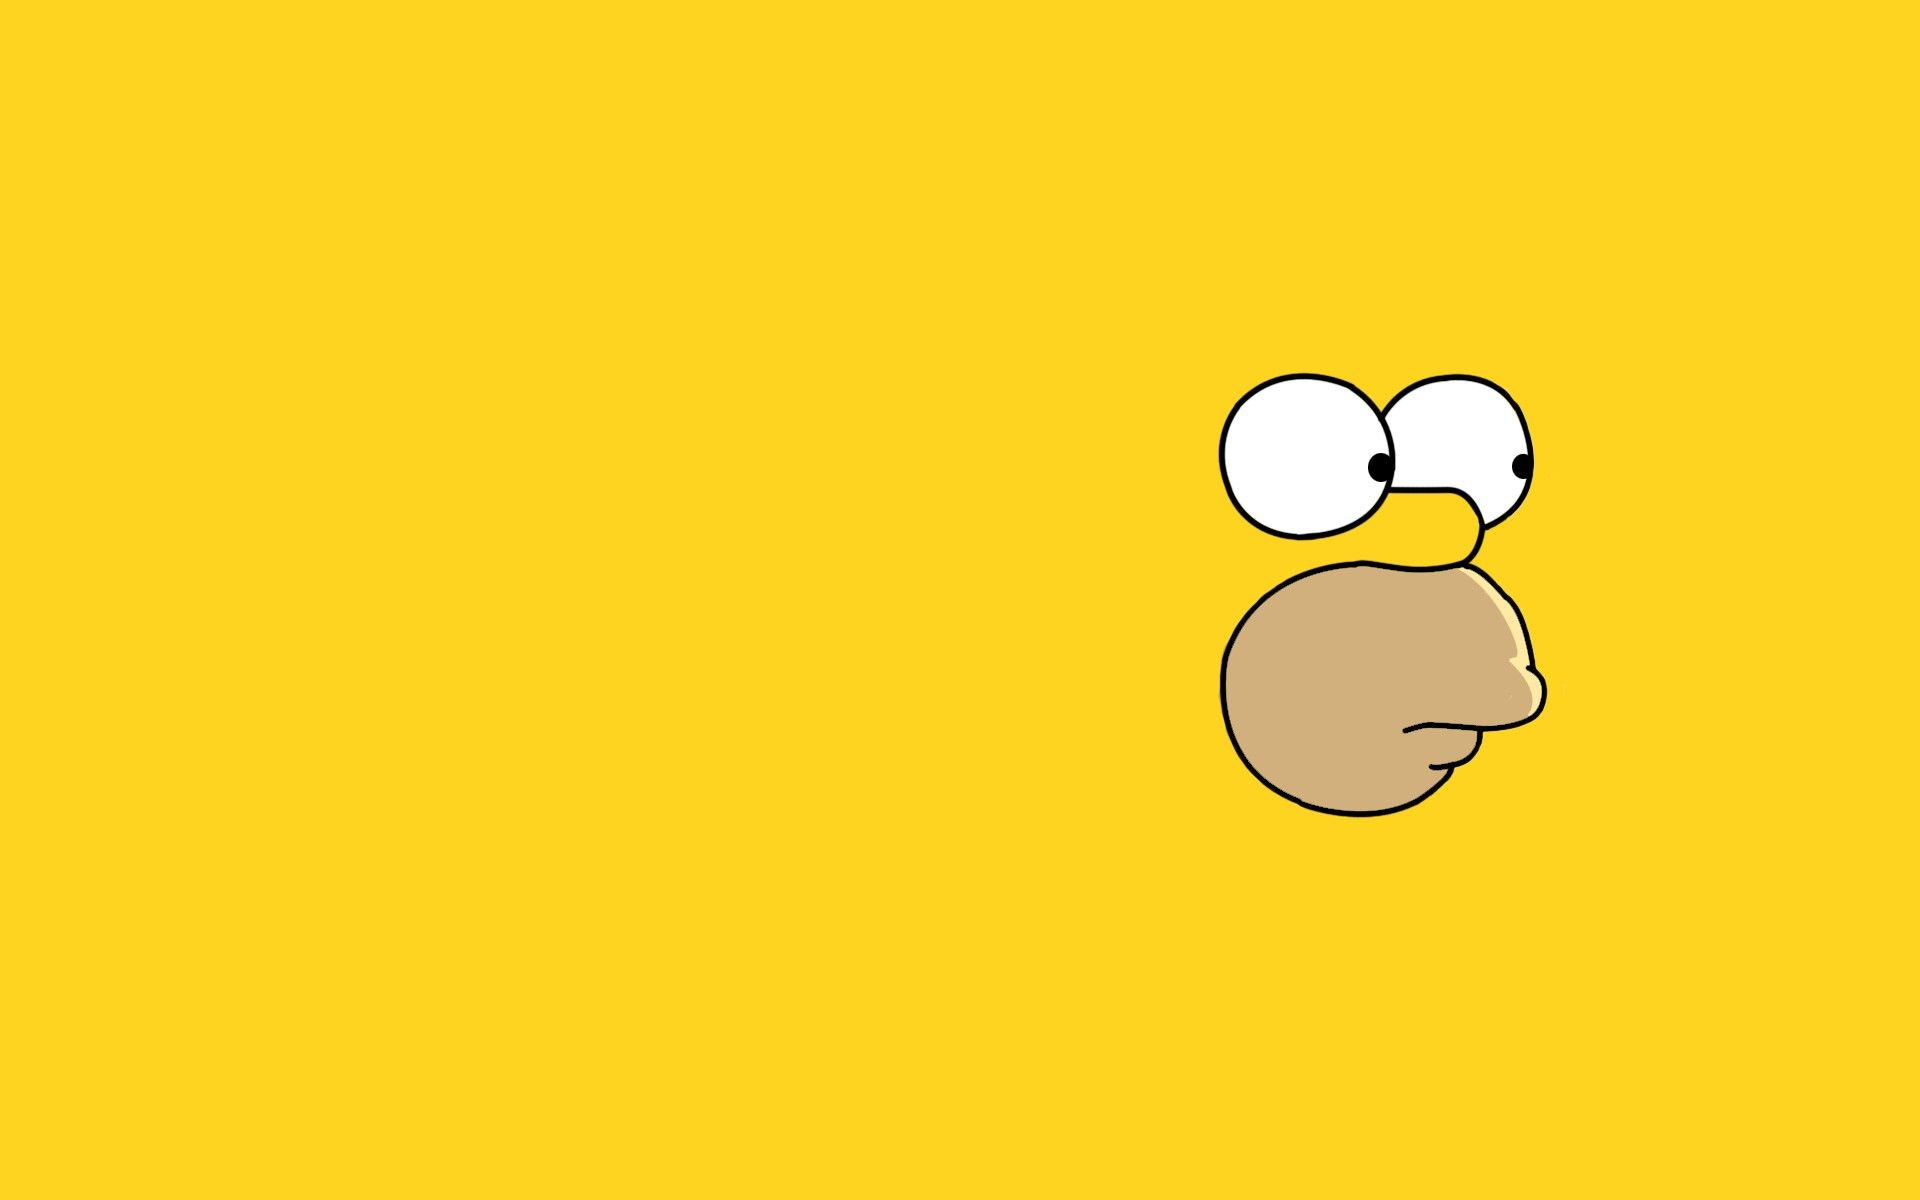 Homer Simpson 1920x1200 HD Wallpaper The Simpsons